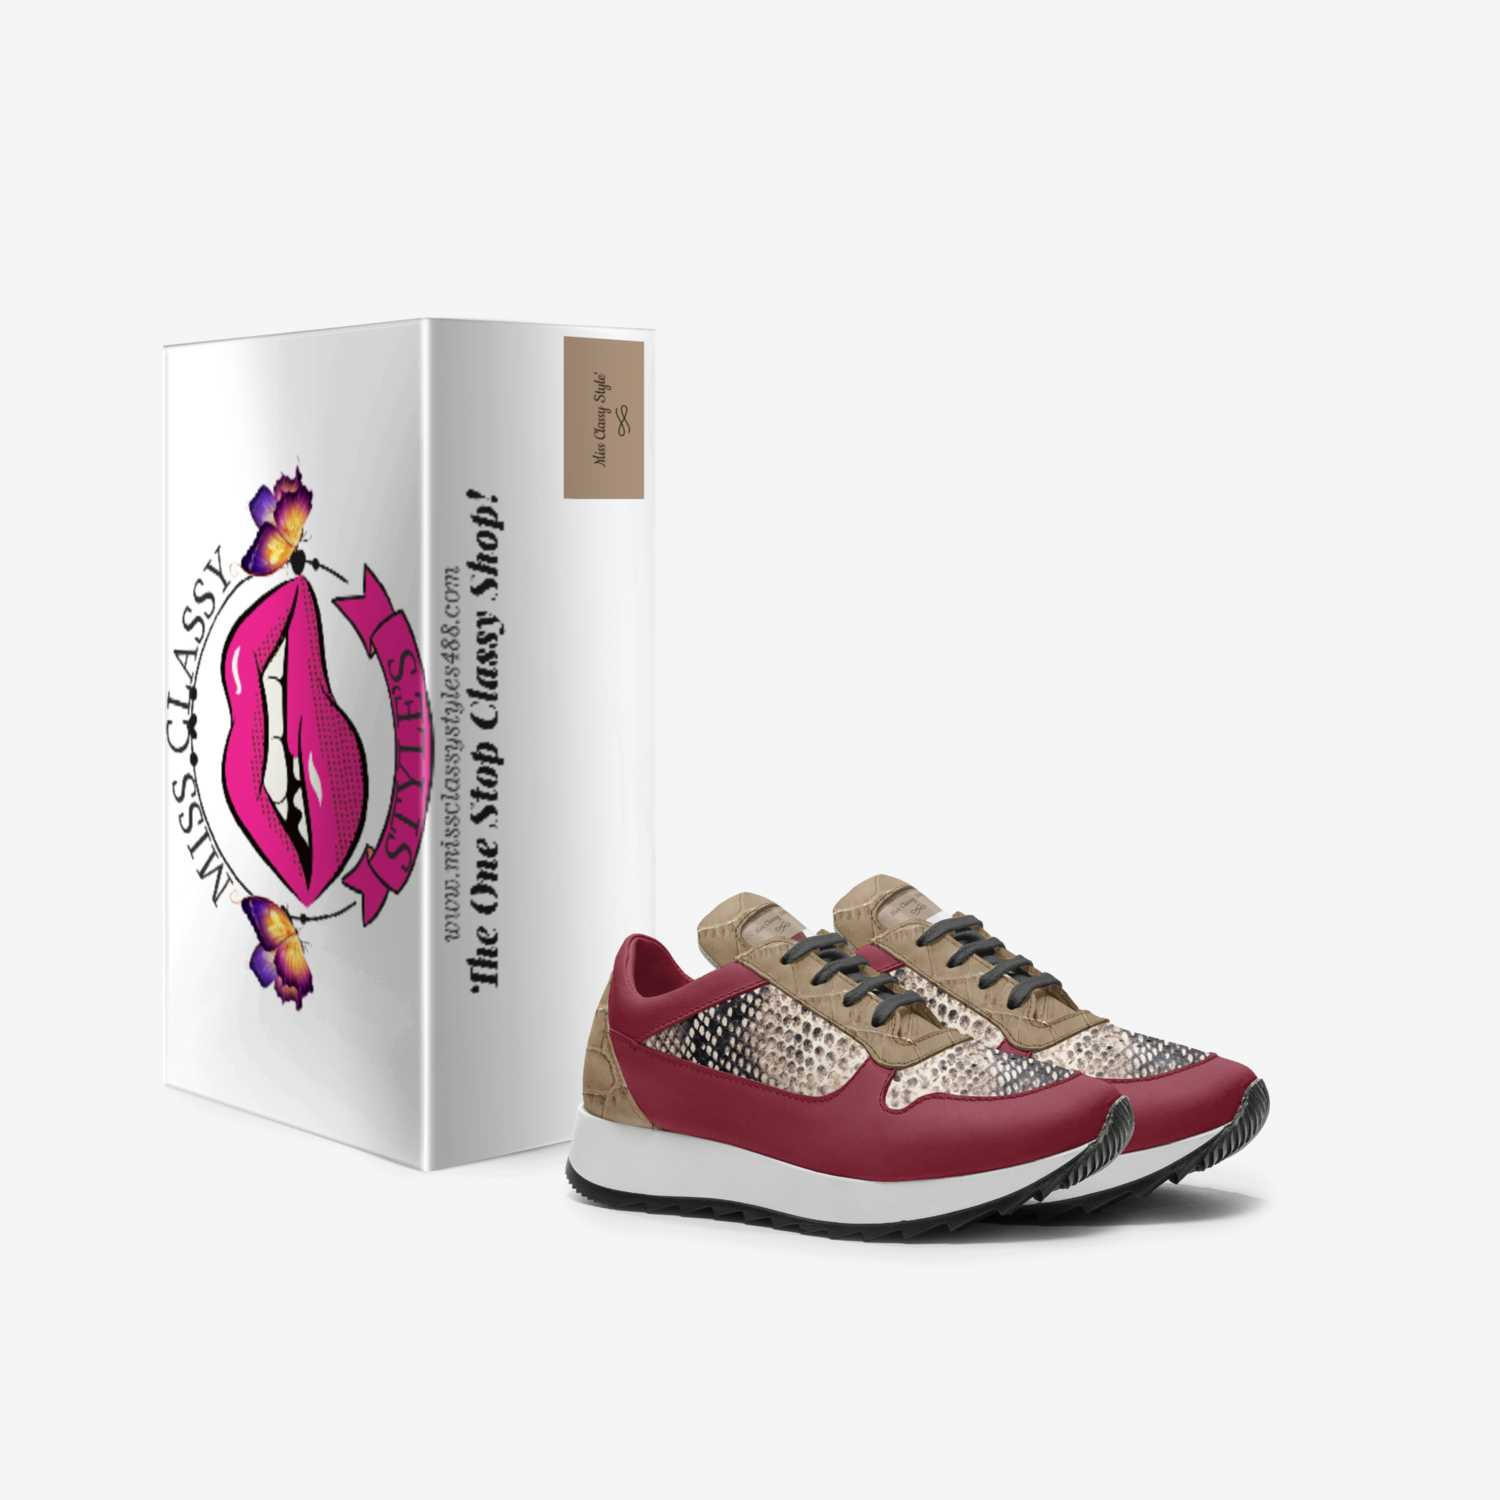 Miss Classy Style' custom made in Italy shoes by Marcie Taylor | Box view